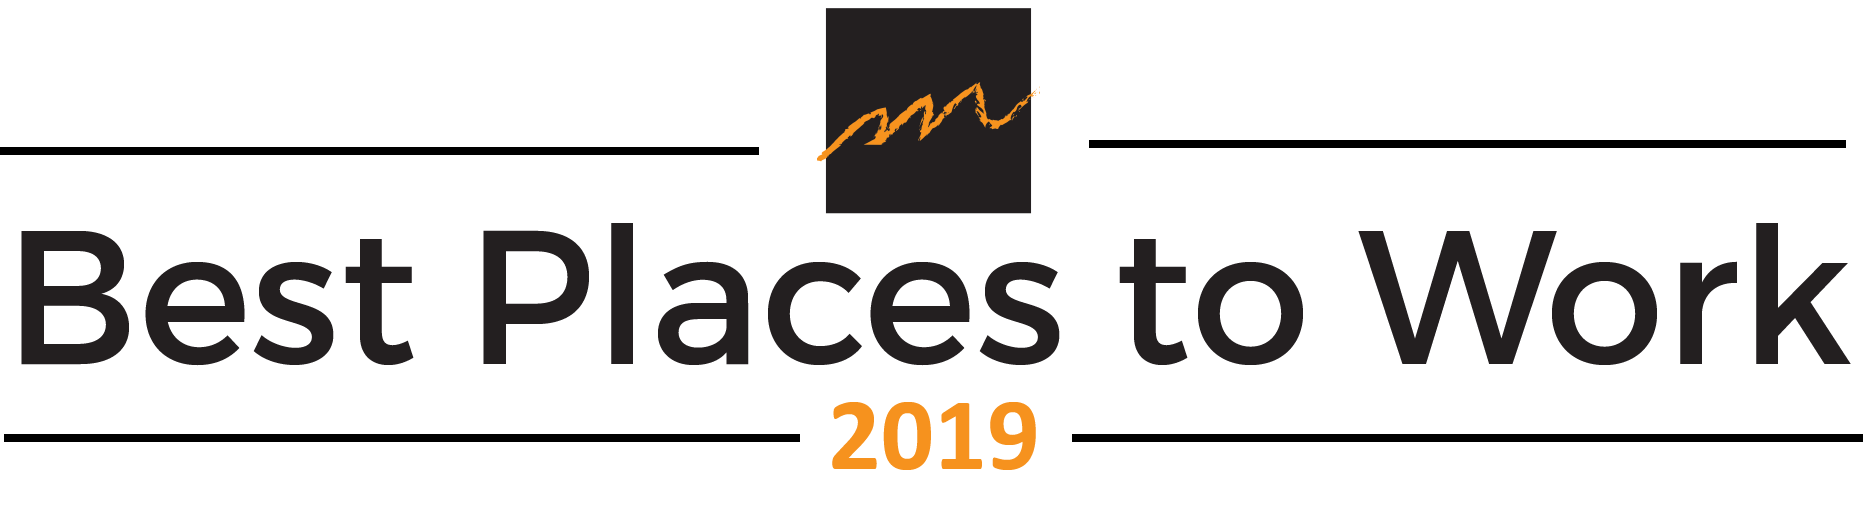 Moody Best Places to Work 2019 logo